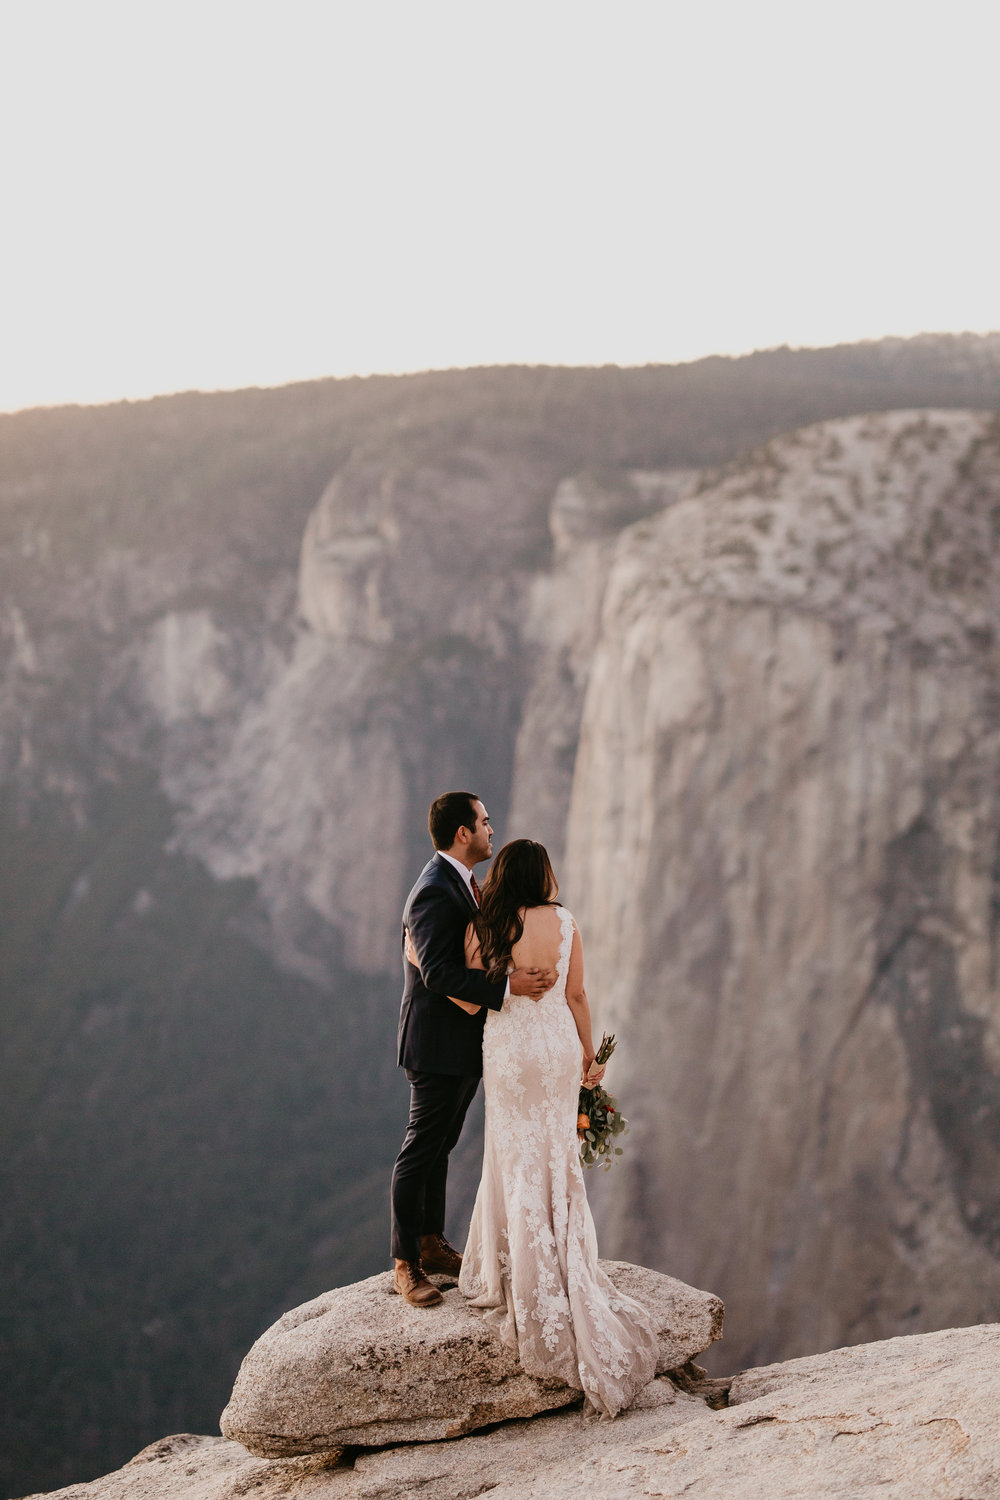 nicole-daacke-photography-intimate-elopement-wedding-yosemite-national-park-california-taft-point-sunset-photos-yosemite-valley-tunnel-view-first-look-sunrise-golden-granite-hiking-adventure-wedding-adventurous-elopement-photographer-123.jpg